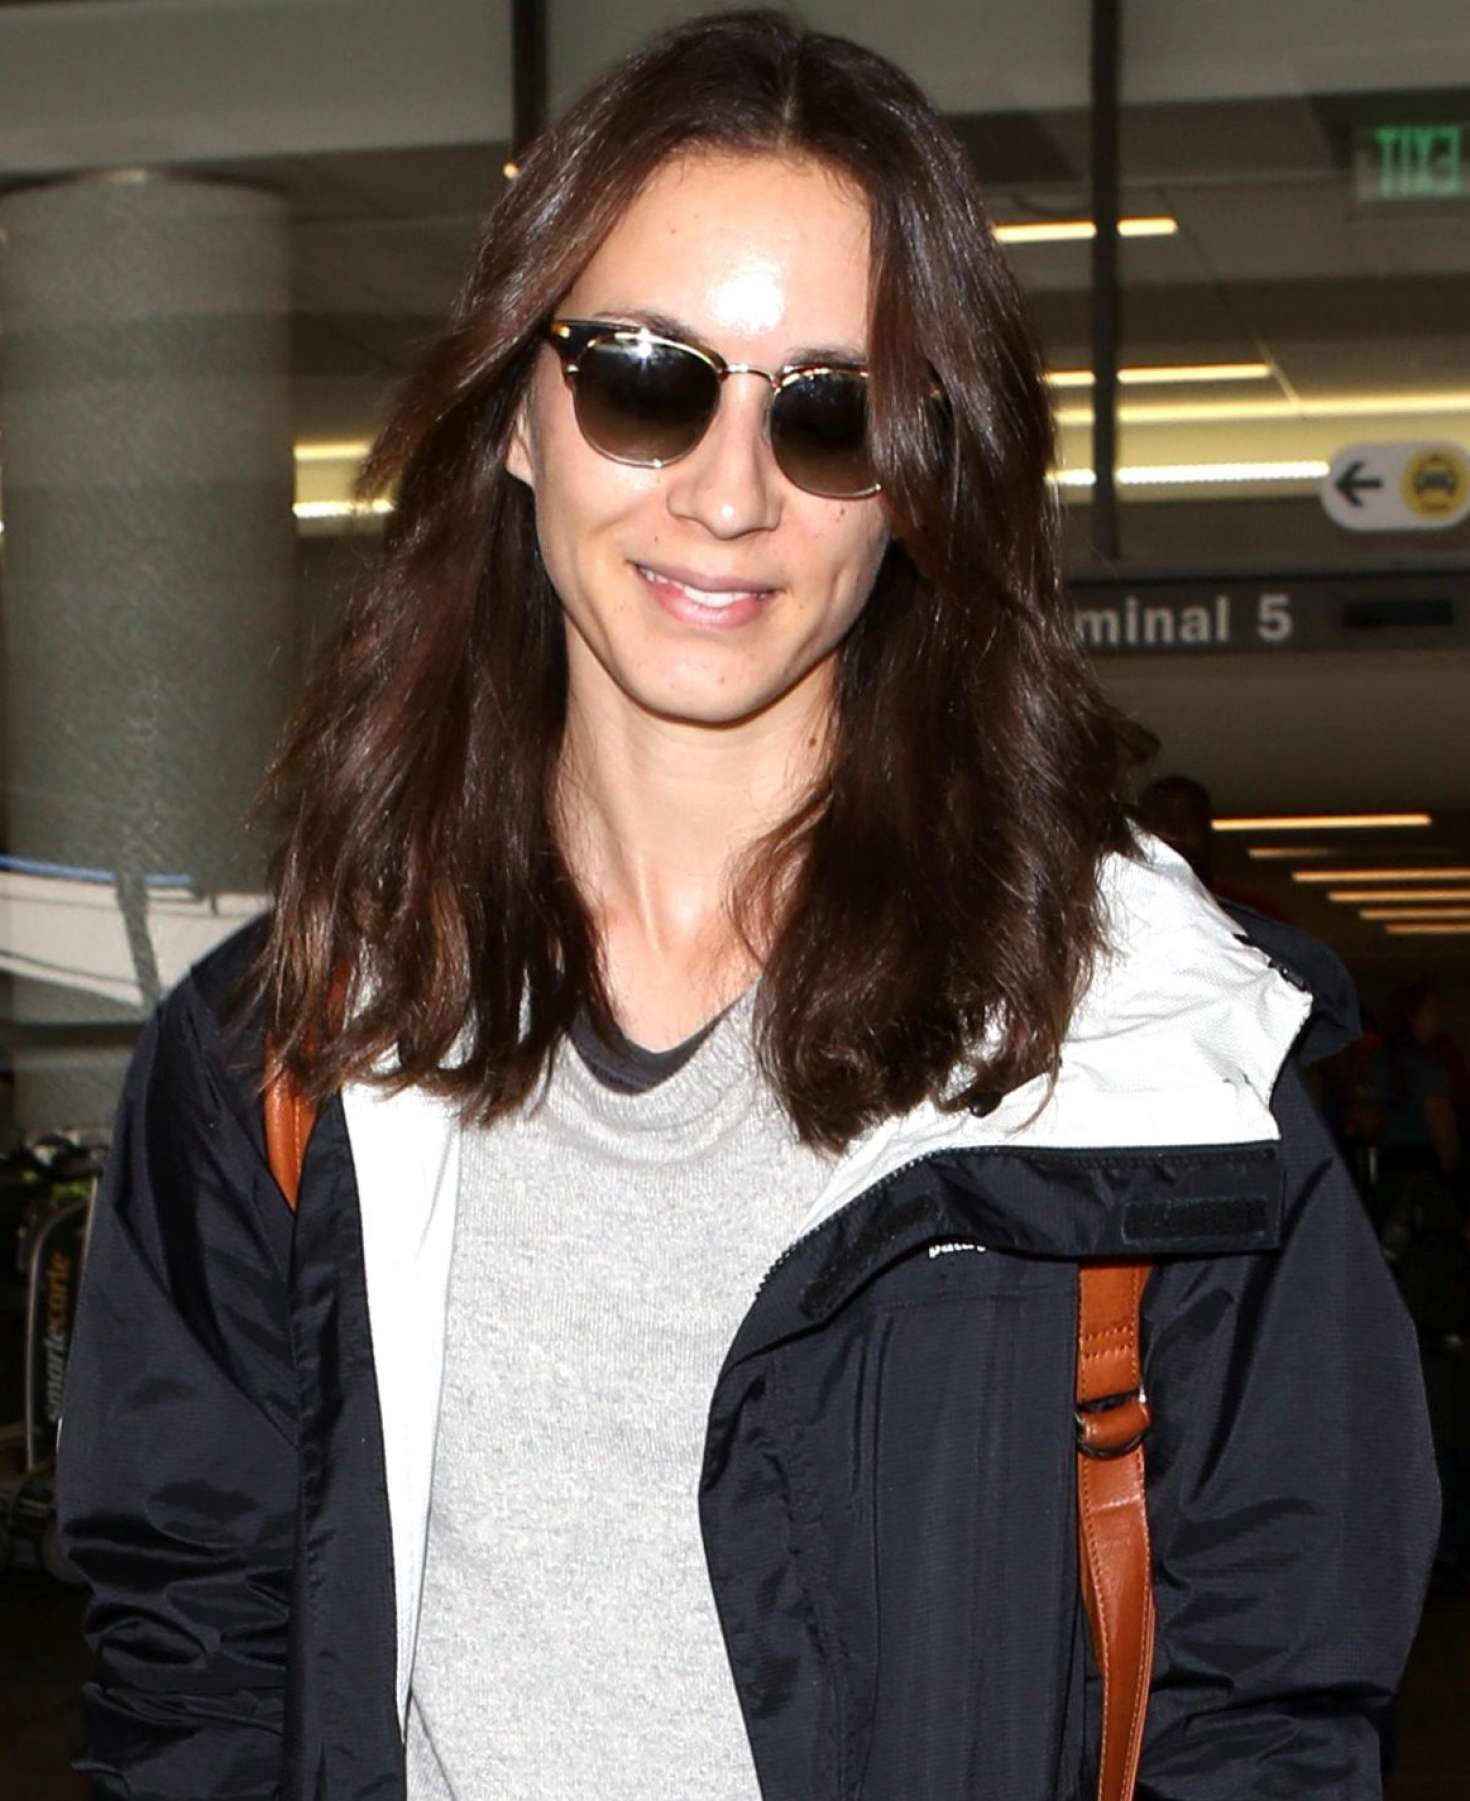 photo Troian bellisario travel outfit at lax airport